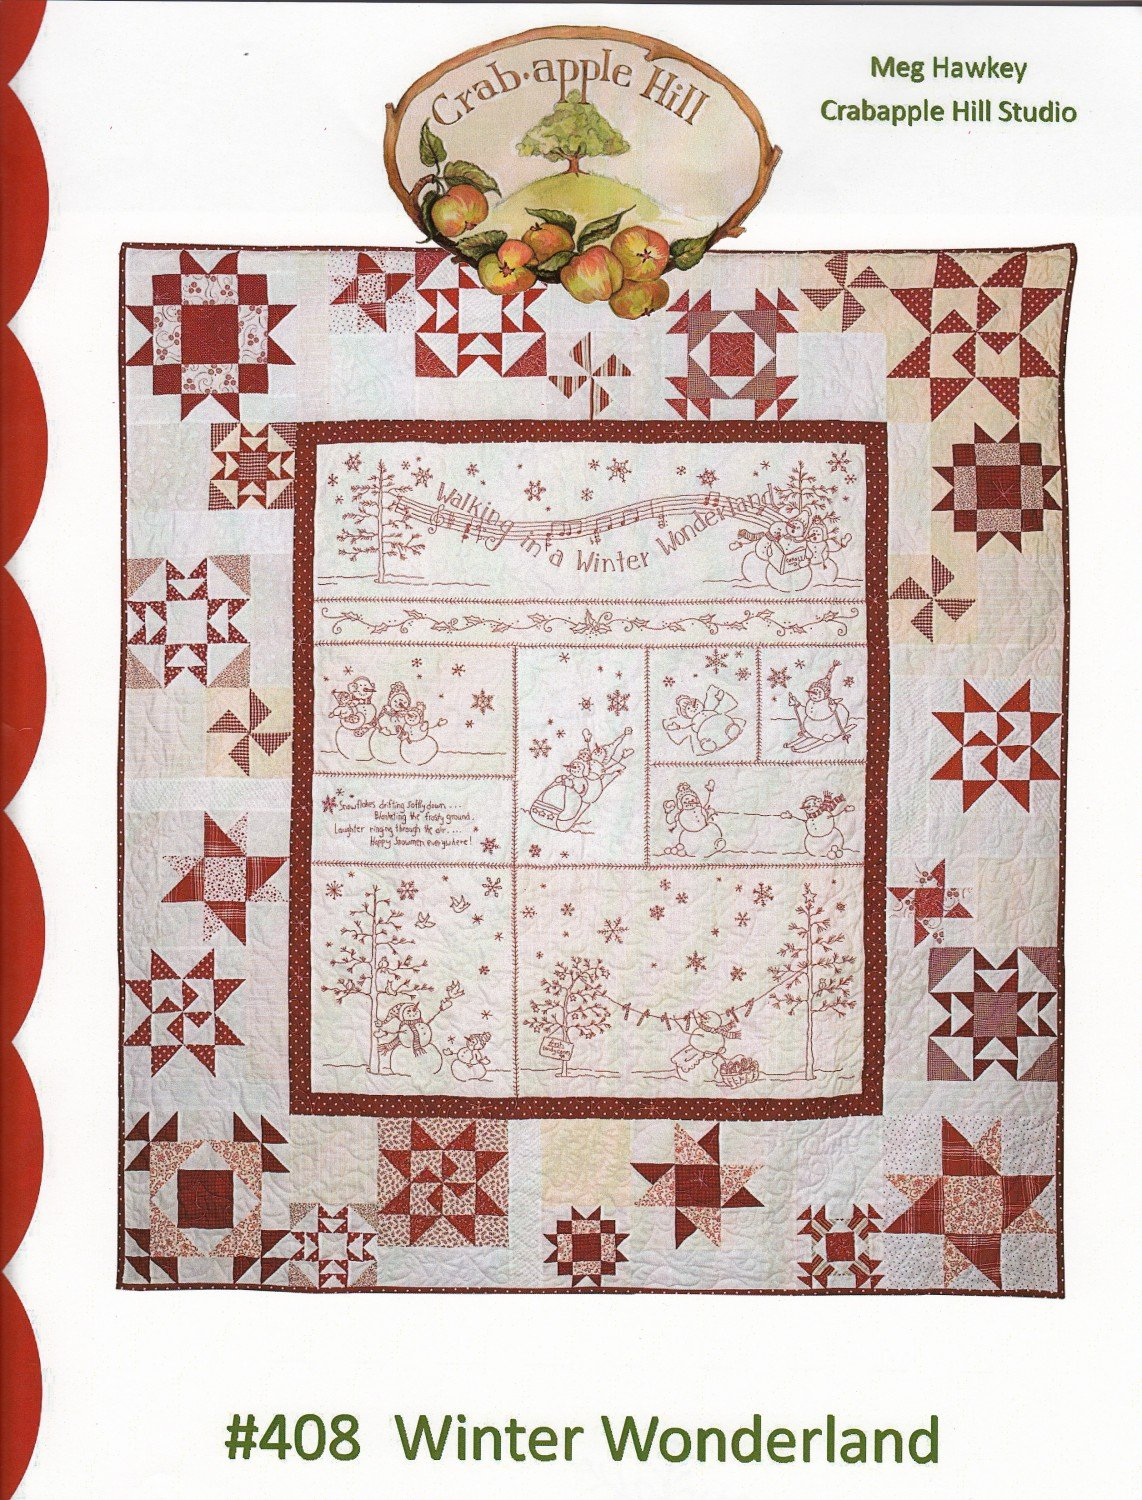 #408 Winter Wonderland from Crabapple Hill Studio by Meg Hawkley